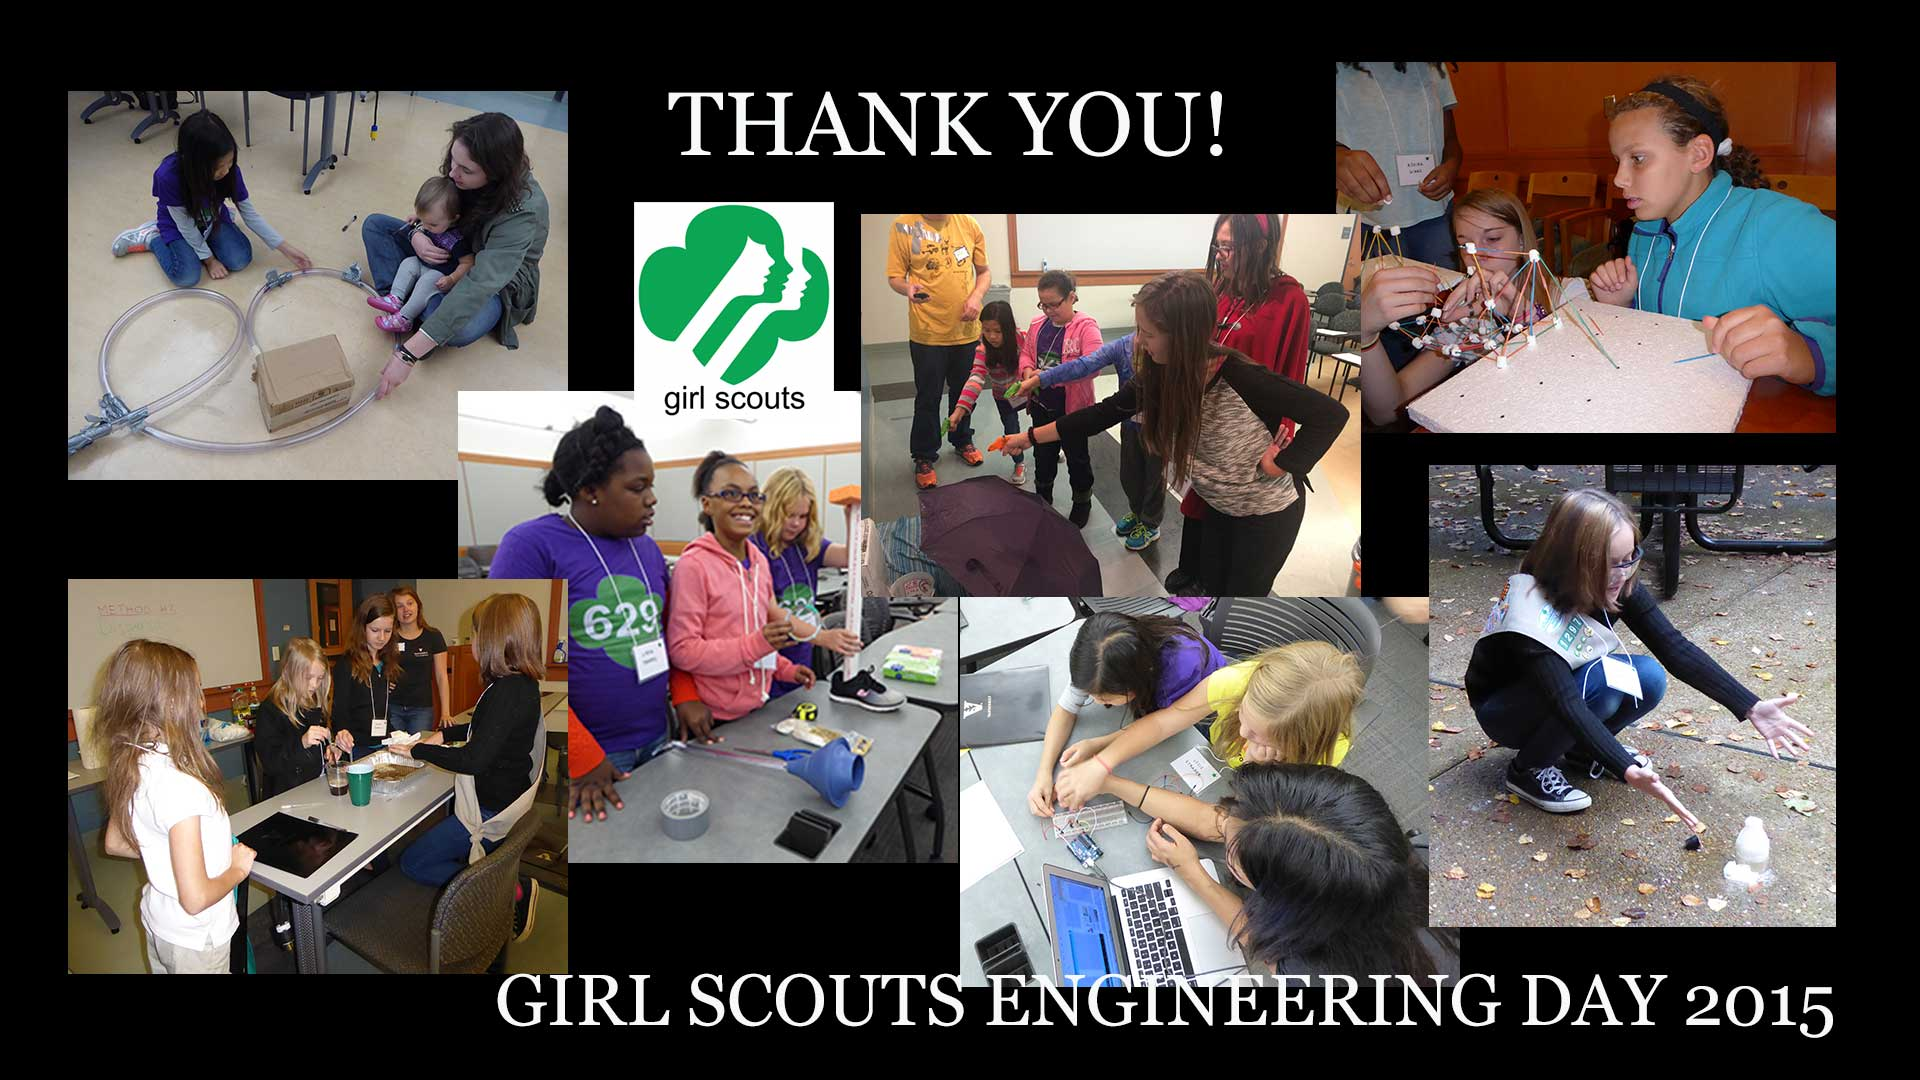 Girl Scouts Engineering Day